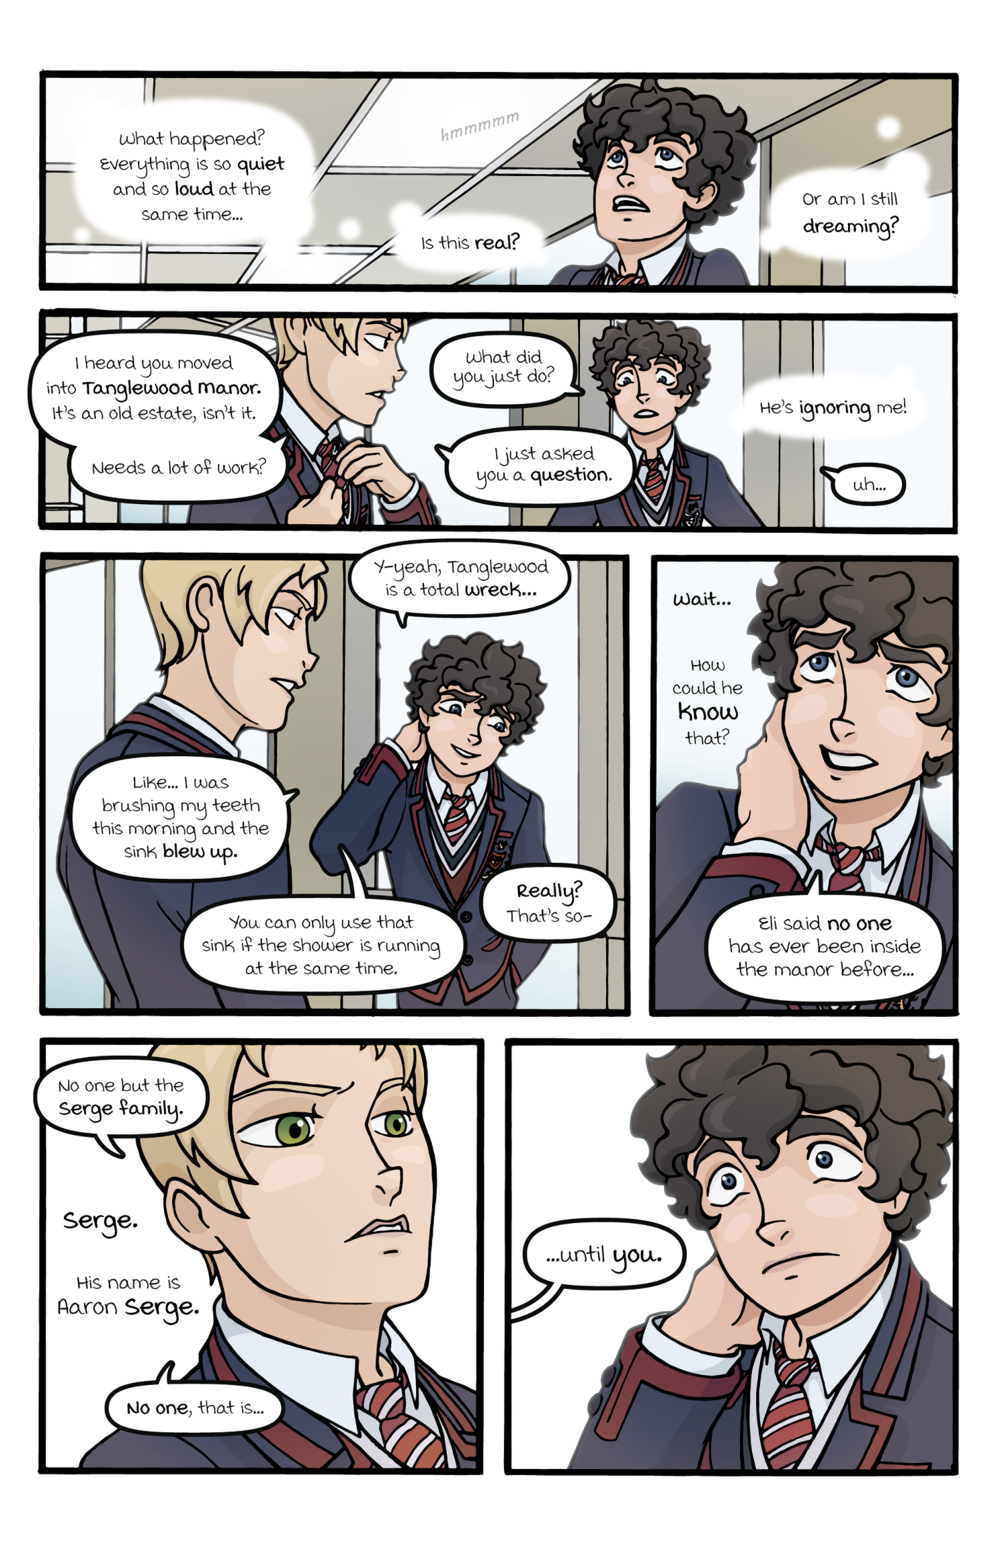 Ch02_P10_forSS.png